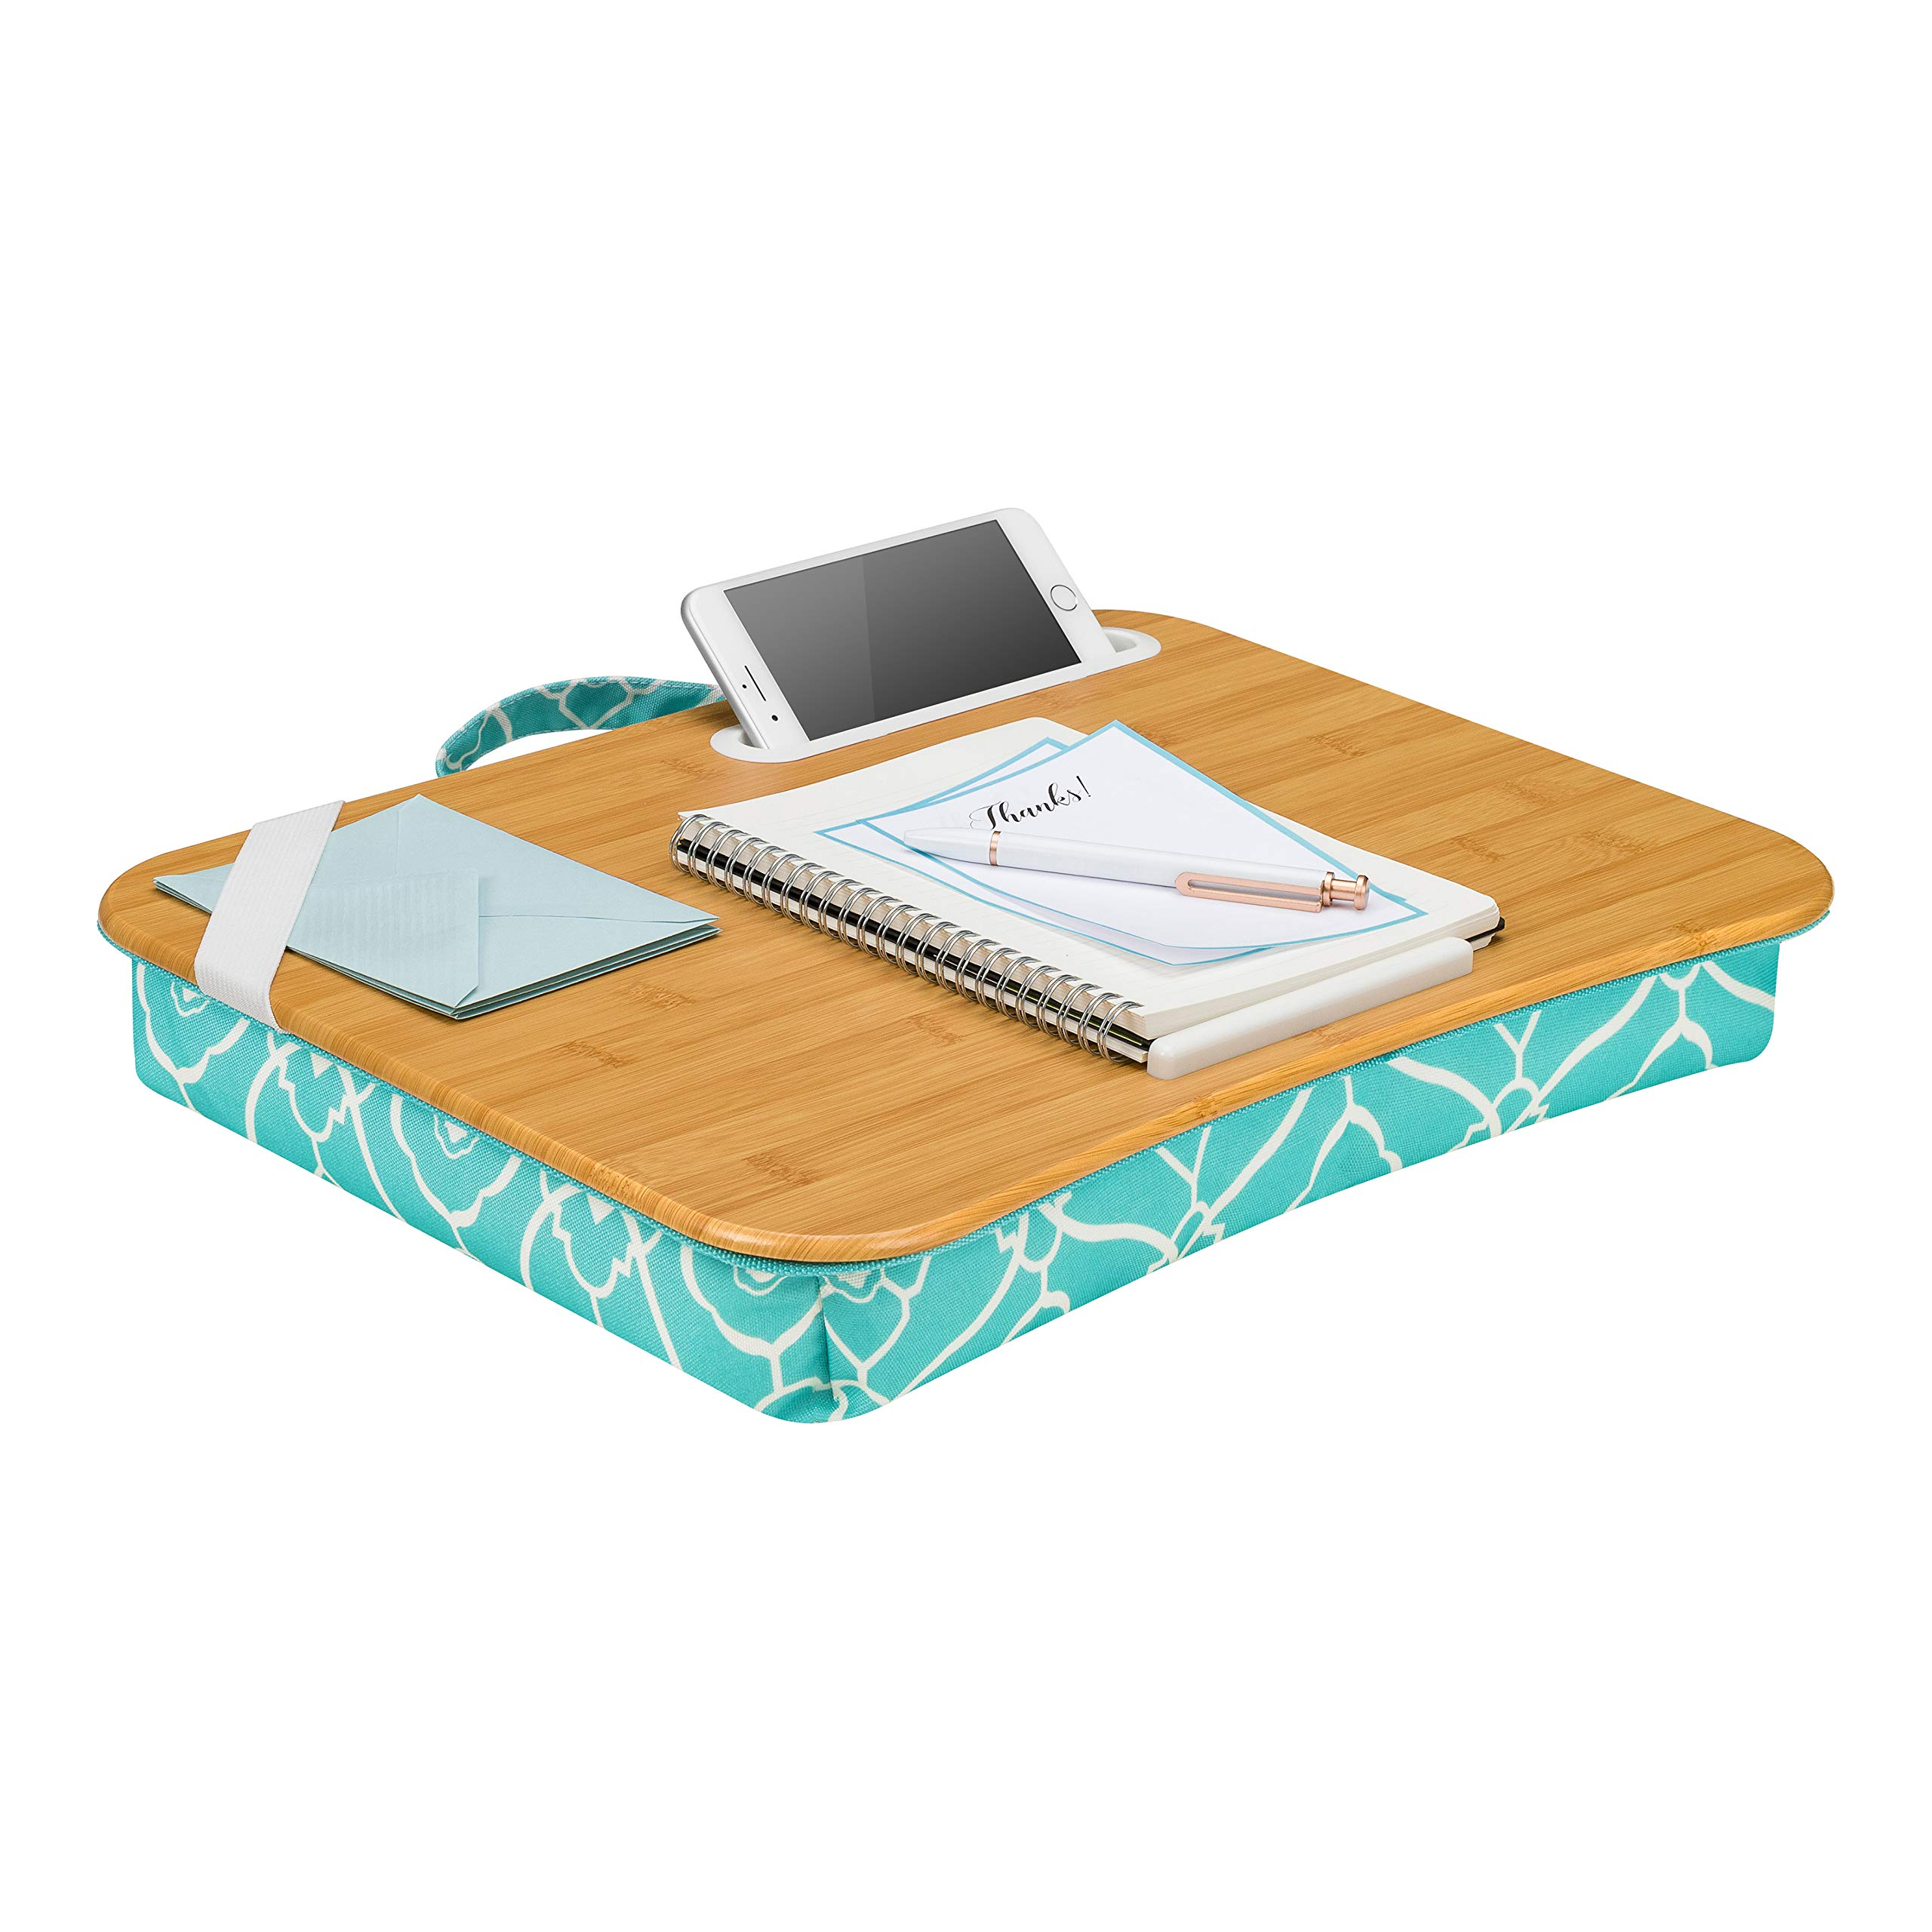 LapGear Designer Lap Desk with phone holder - Aqua Trellis - Fits up to 15.6 Inch laptops - Style No. 45422 by LapGear (Image #1)